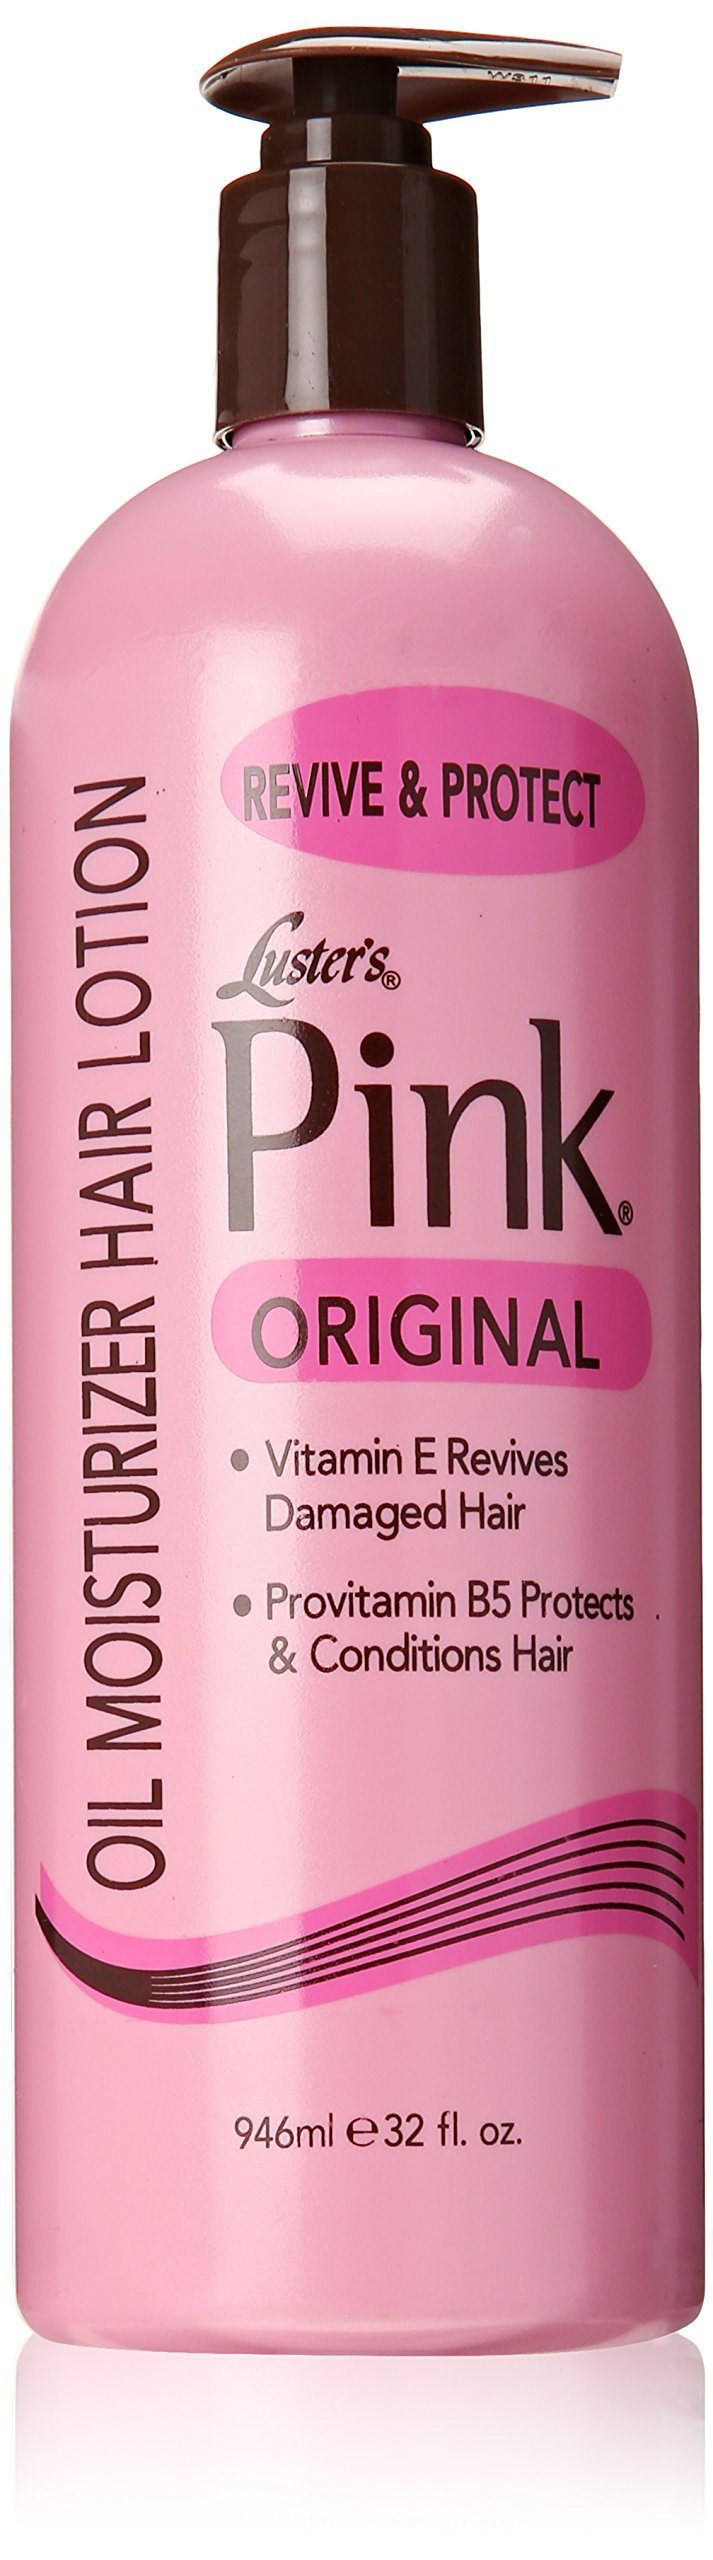 Lusters Pink Oil Moisturizer Hair Lotion  Ounce Packaging May Vary